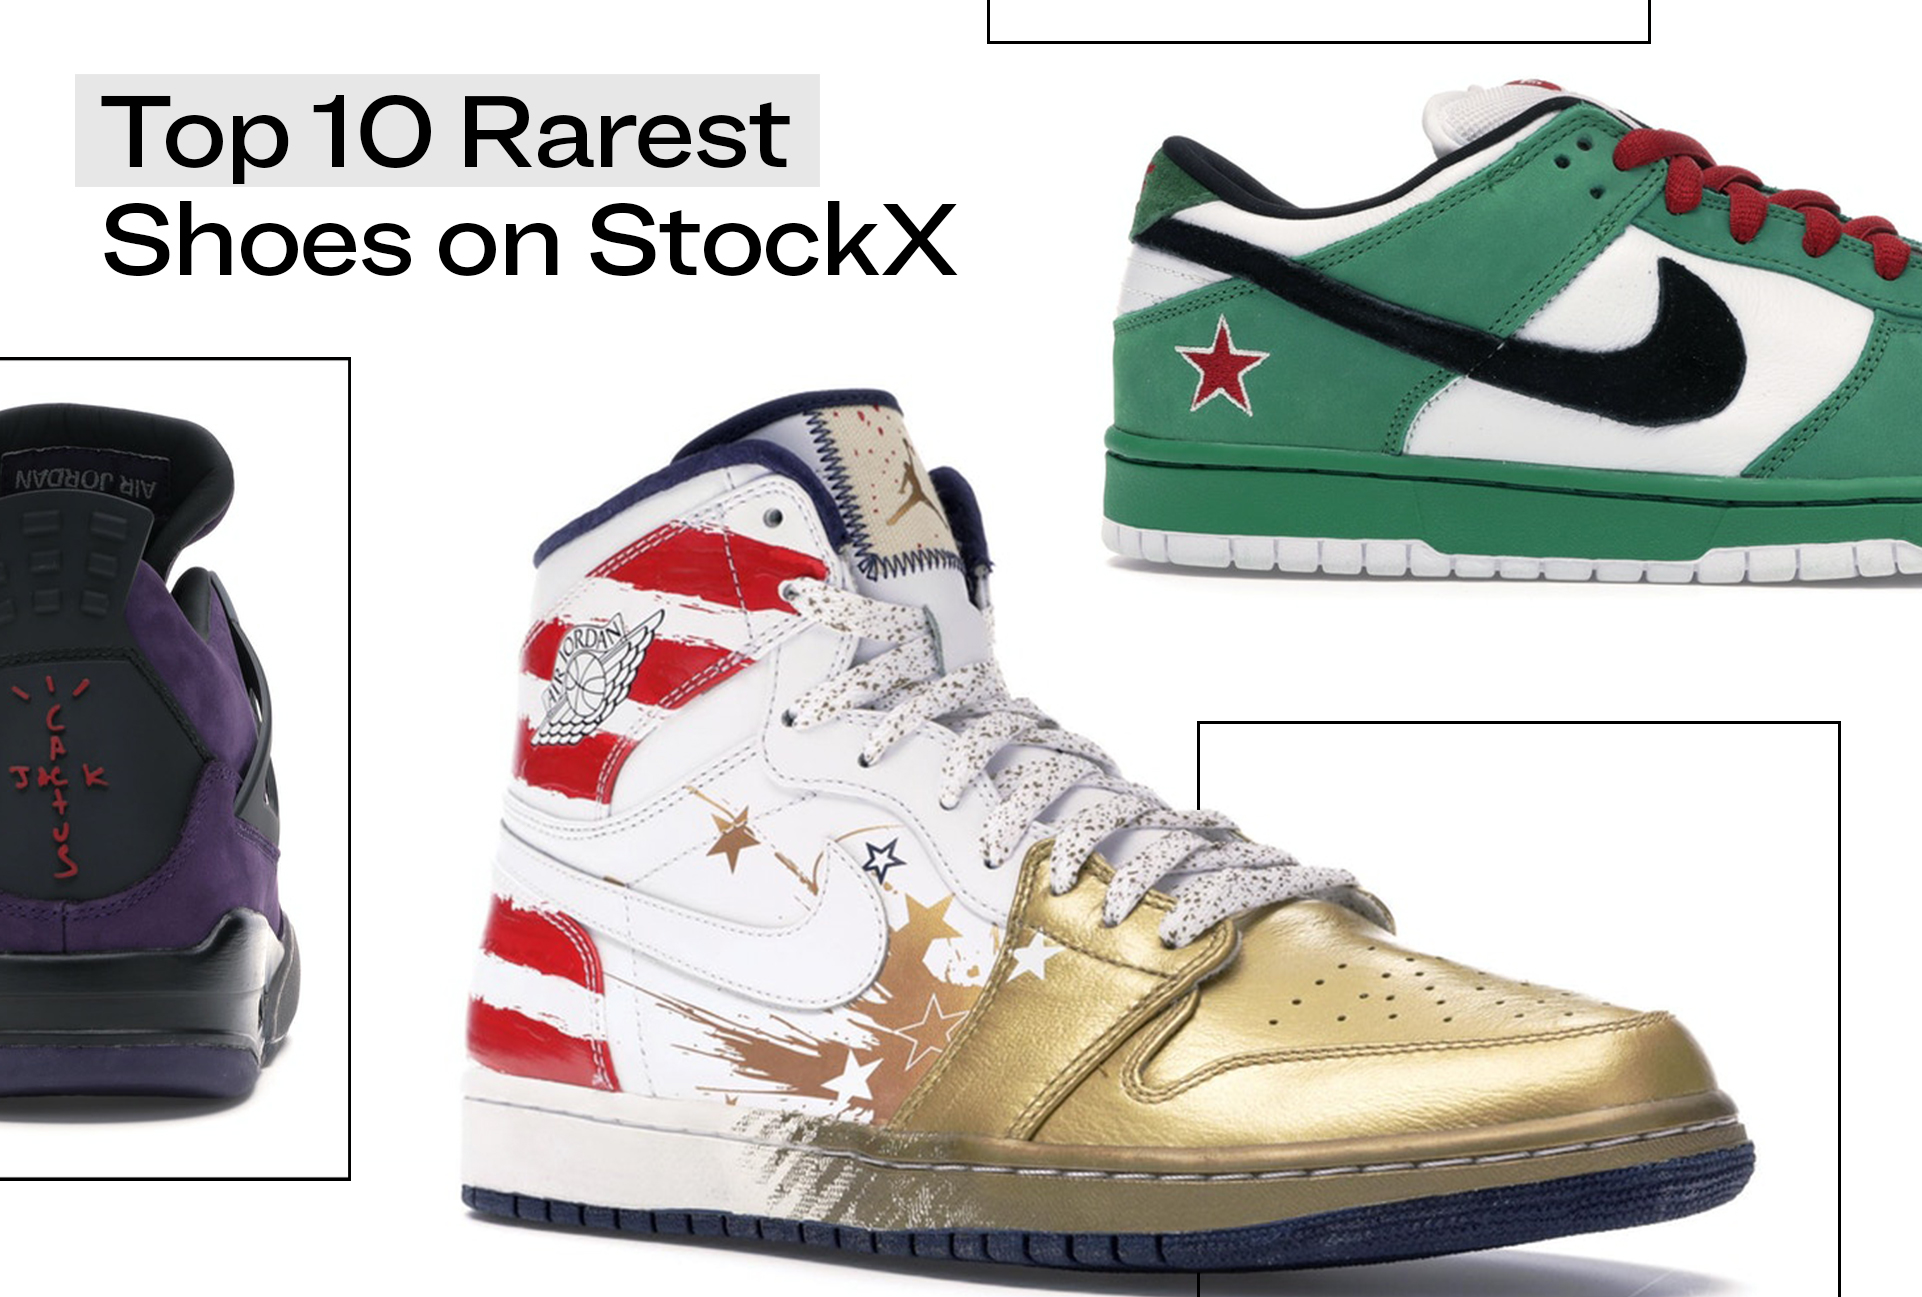 The Rarest Shoes on StockX in 2020